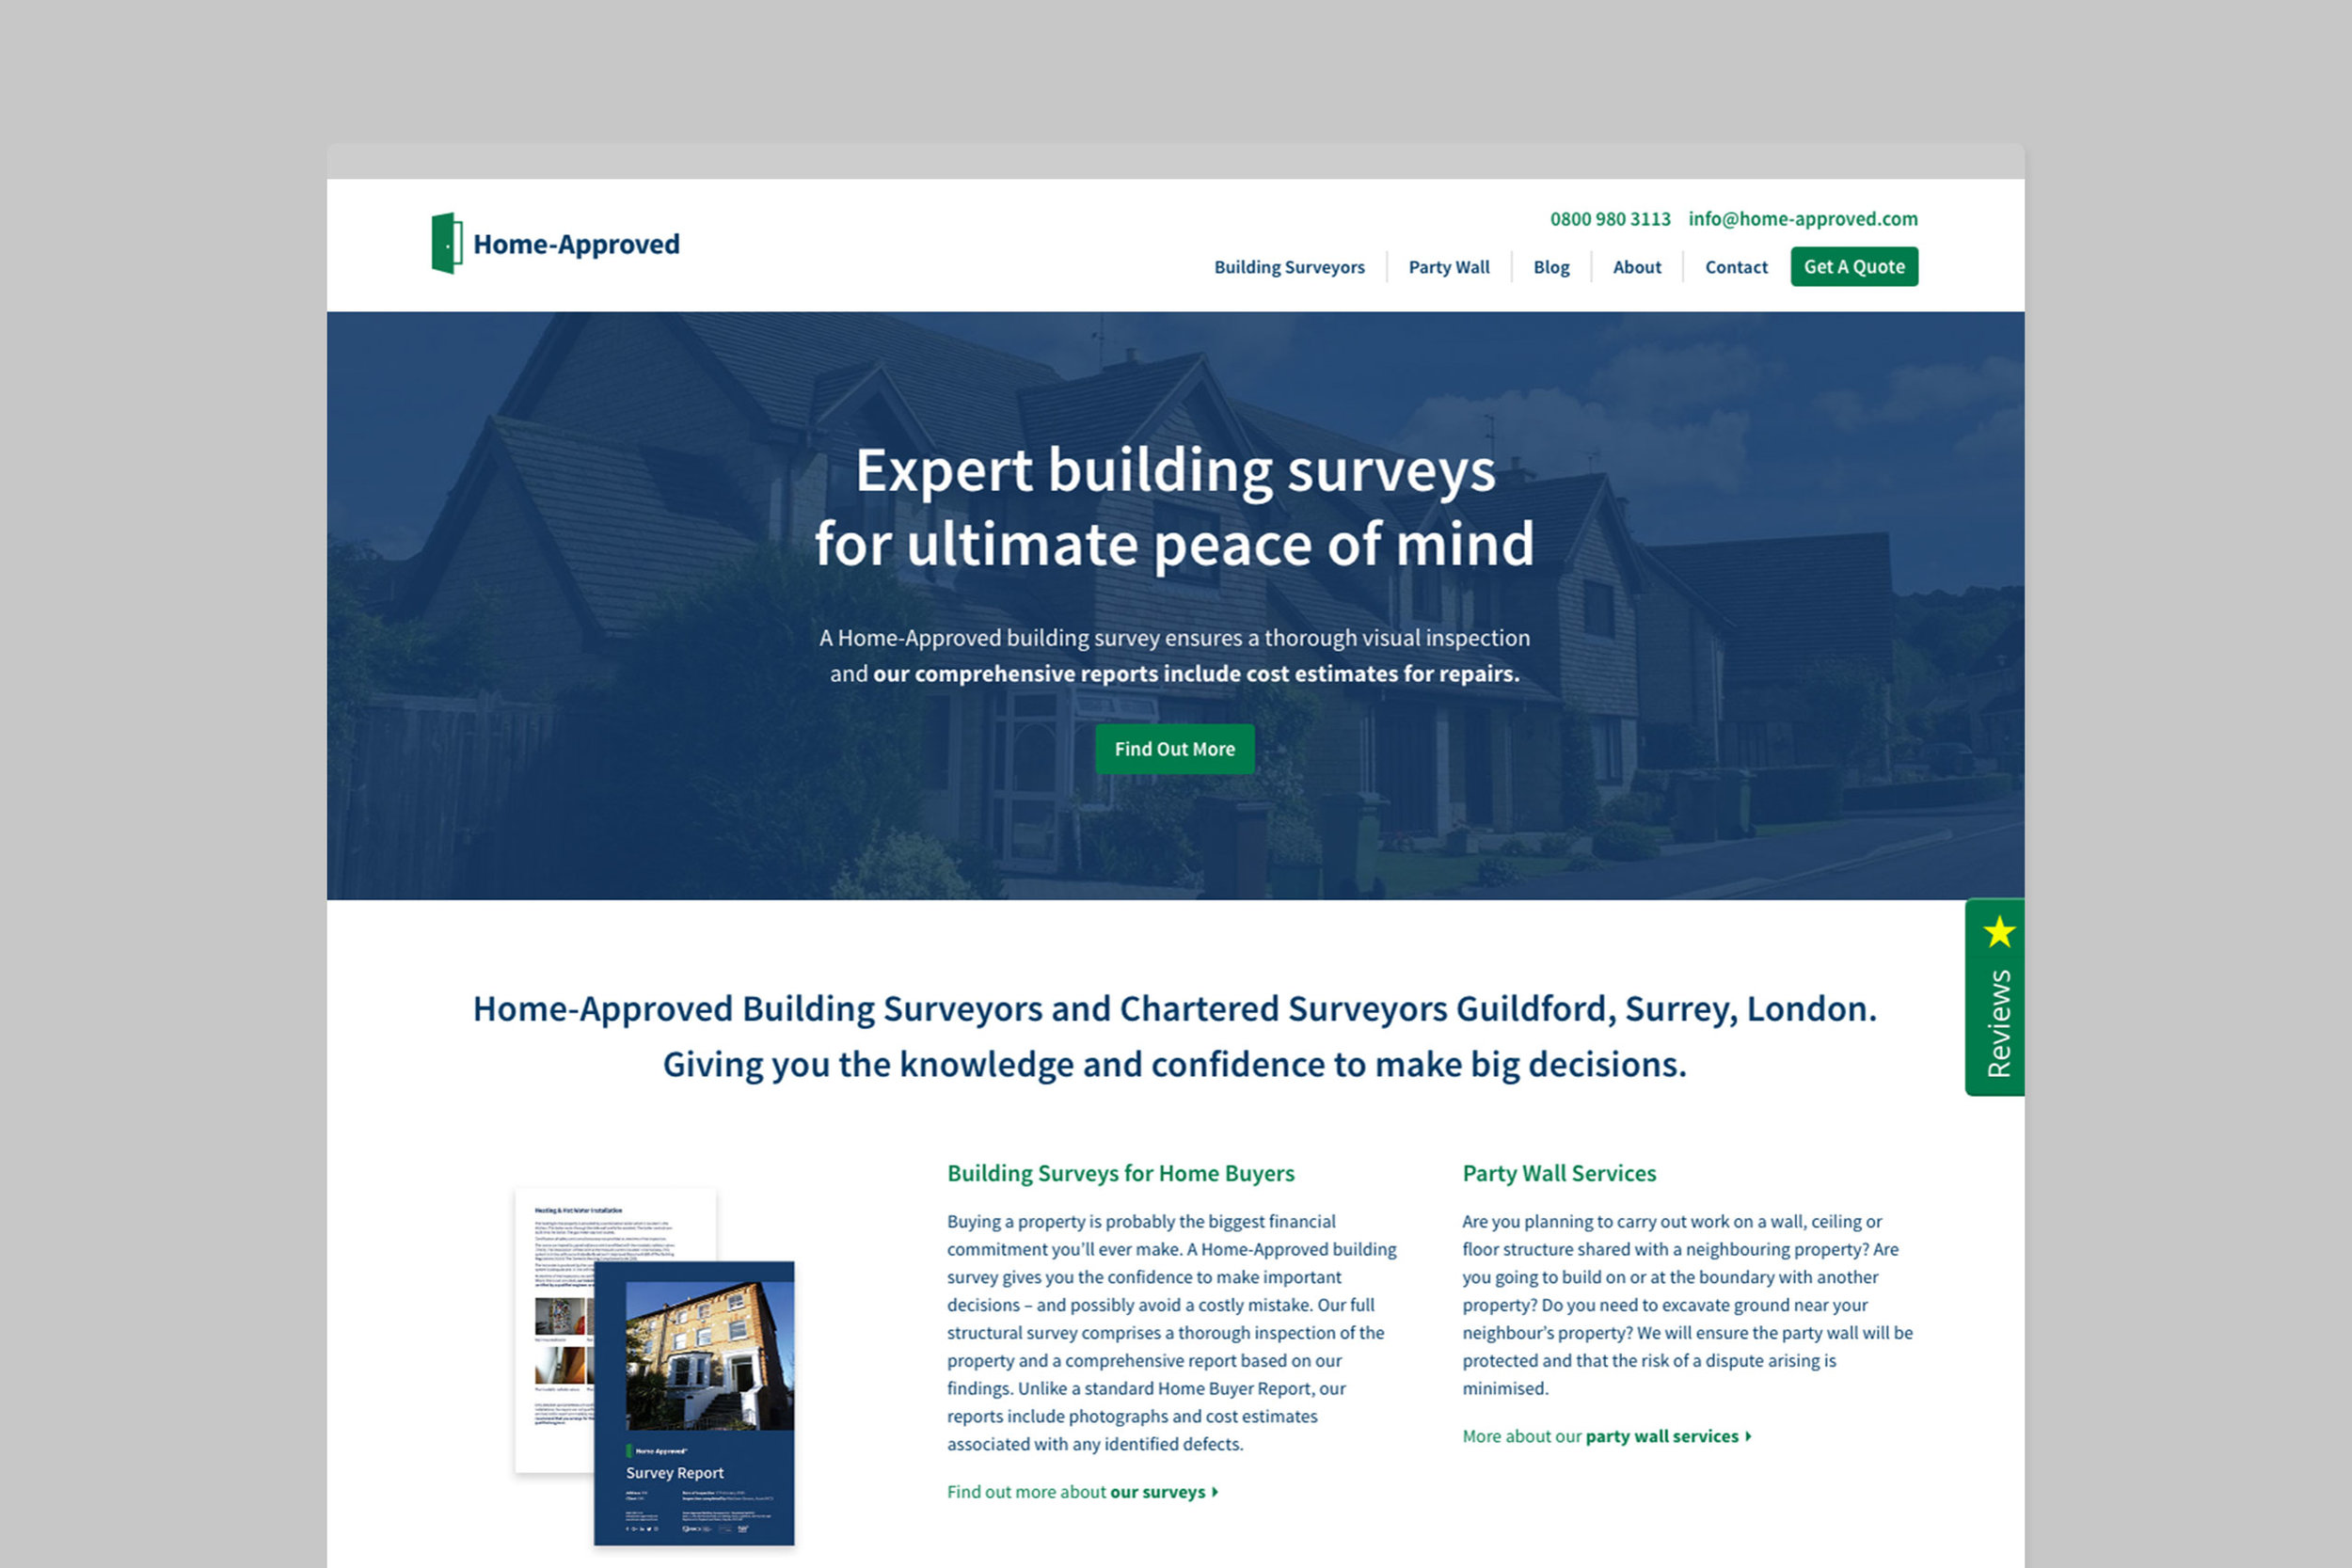 Simple responsive web design for Home-Approved